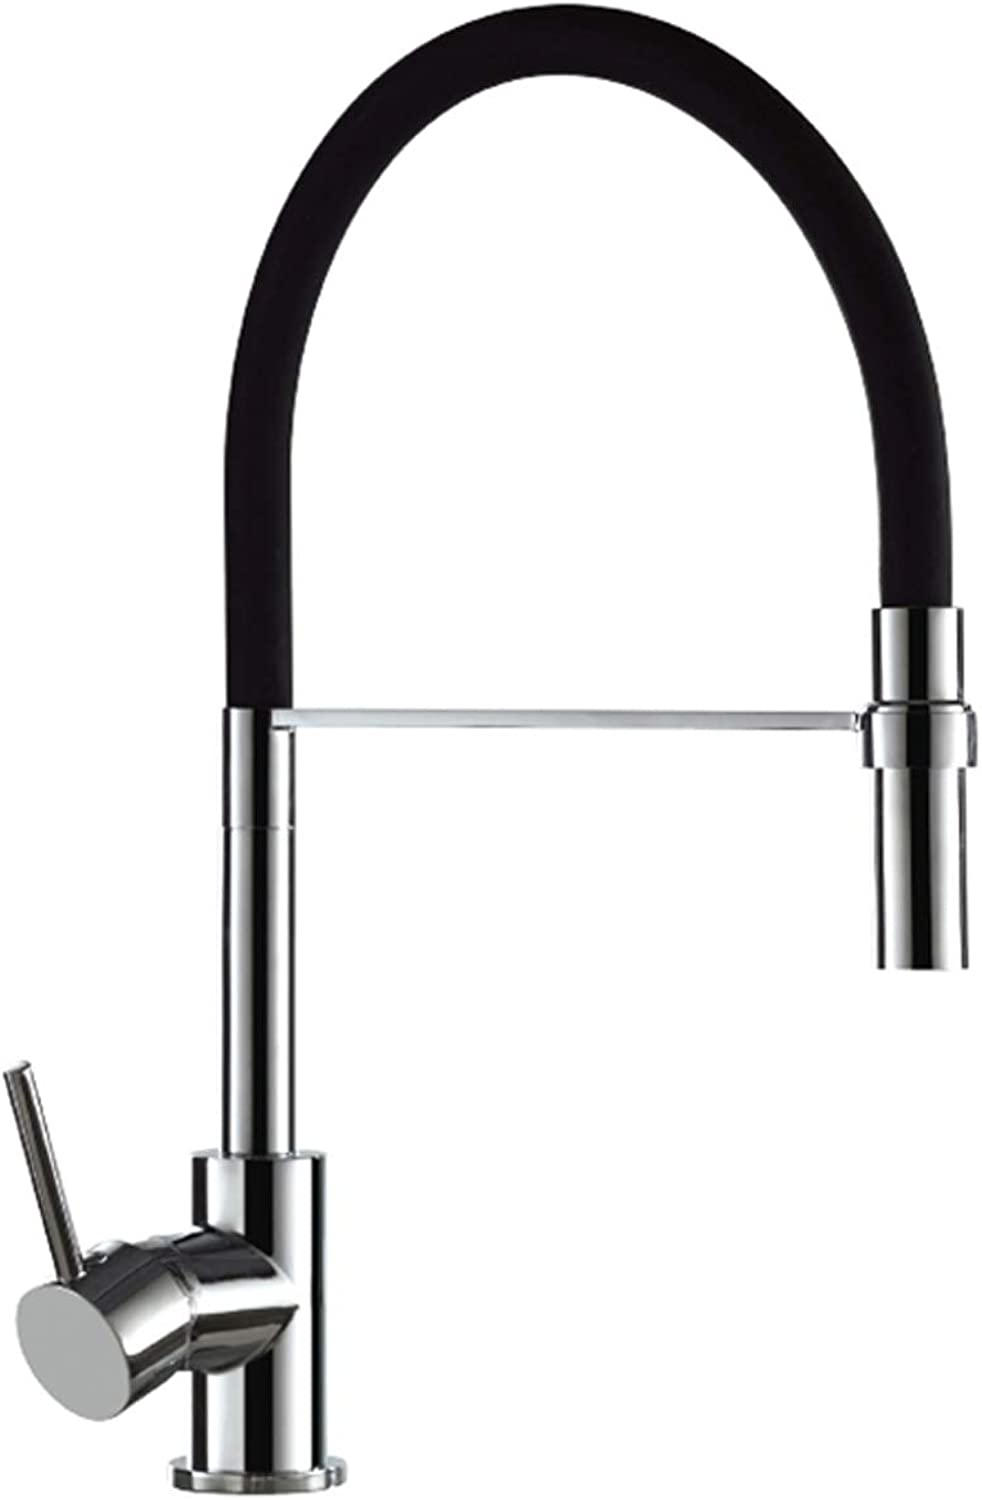 Single-Lever Sink Mixer Side Lever with Flexible Hose Duemmeggi Kitchen Sydney Brass Chrome and Black Finish